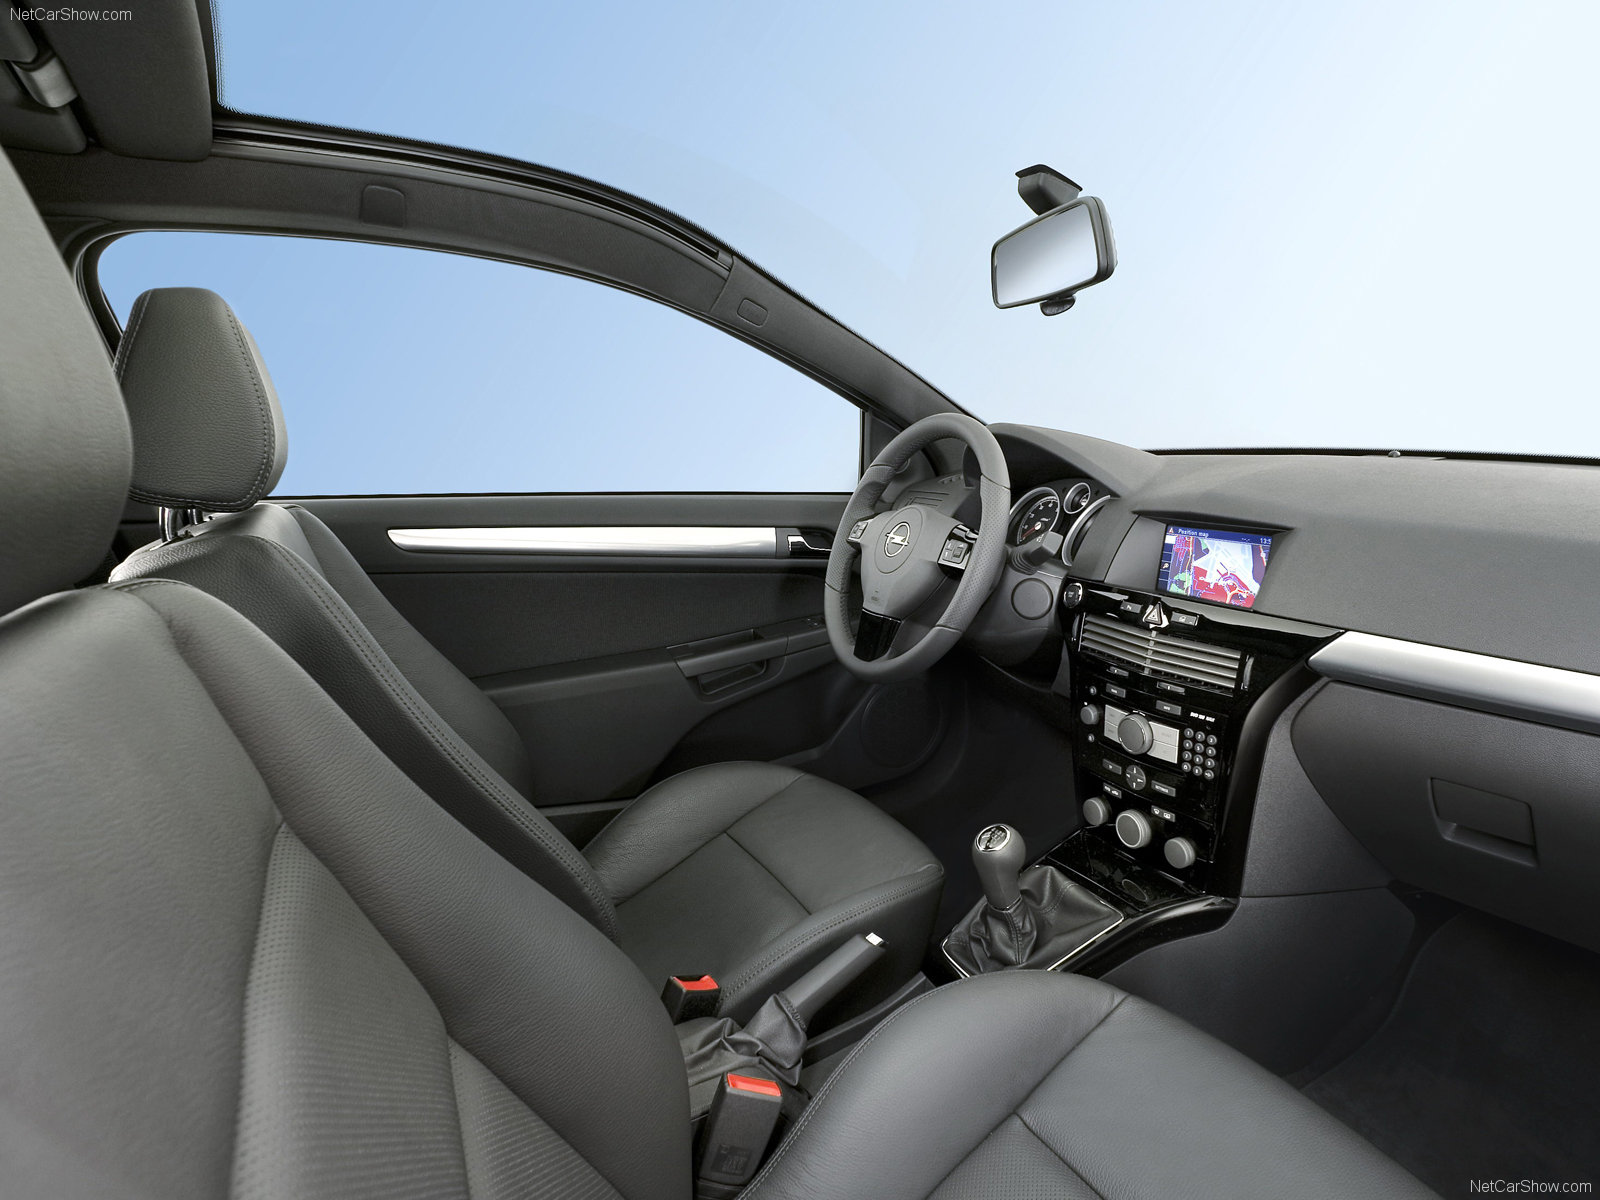 Opel Astra photos - Photo Gallery Page #6| CarsBase.com